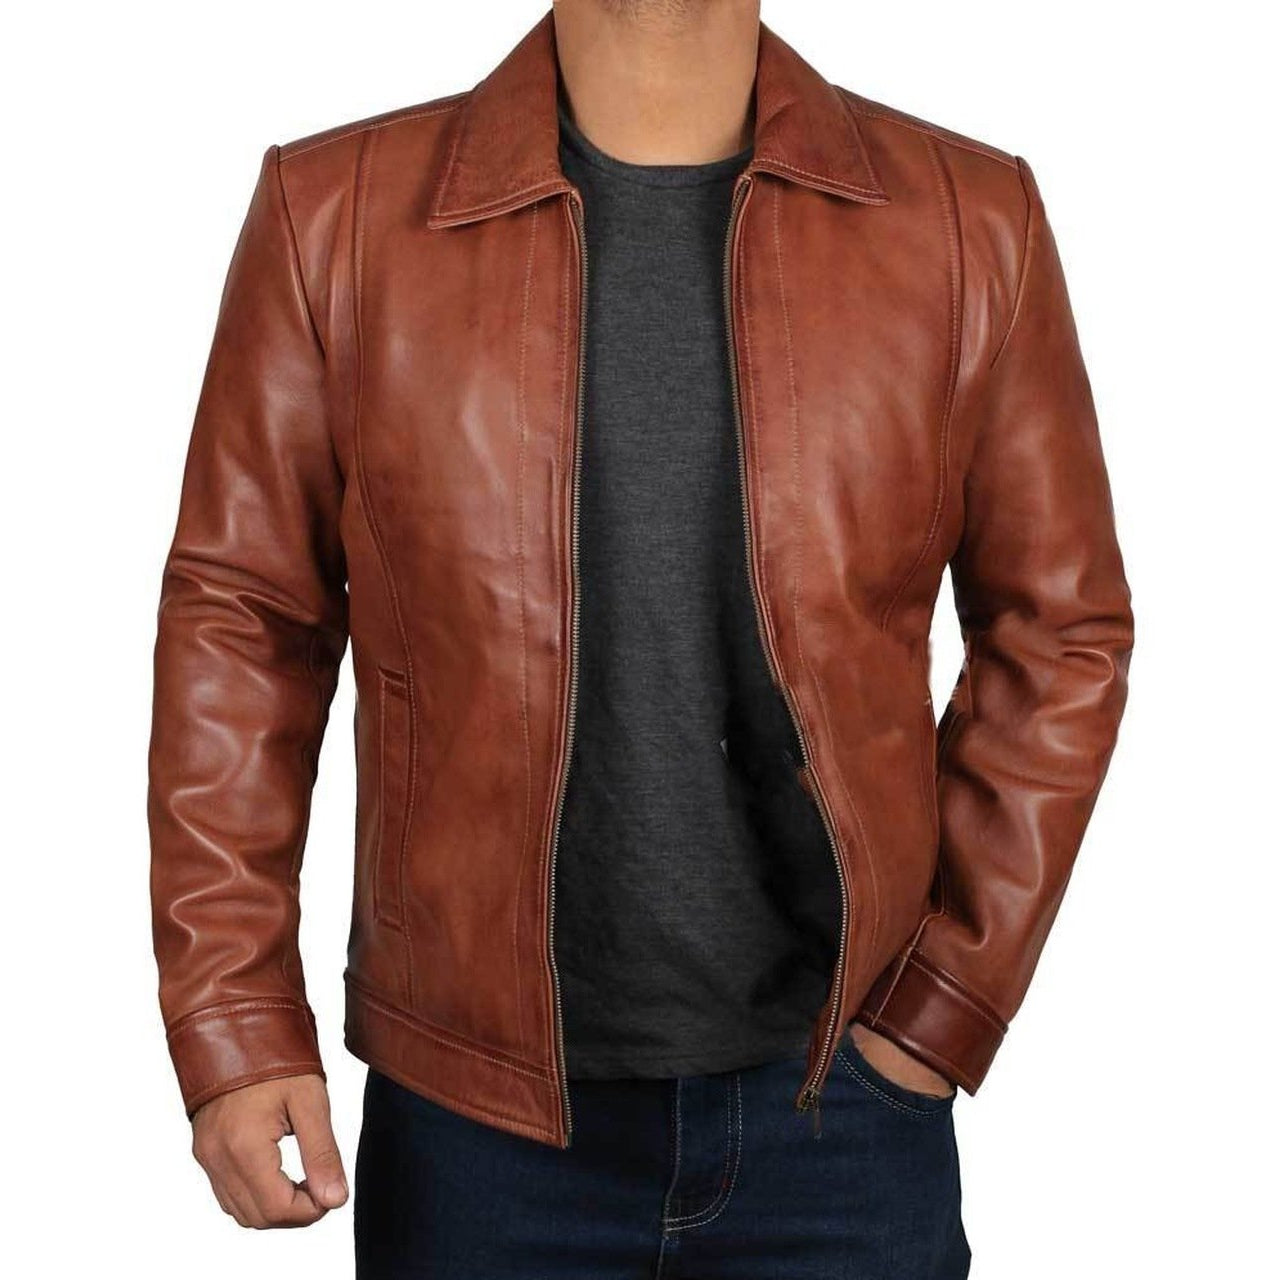 Casual Stylish Brown Fitted Biker Leather Mens Jacket - Leather Jacket